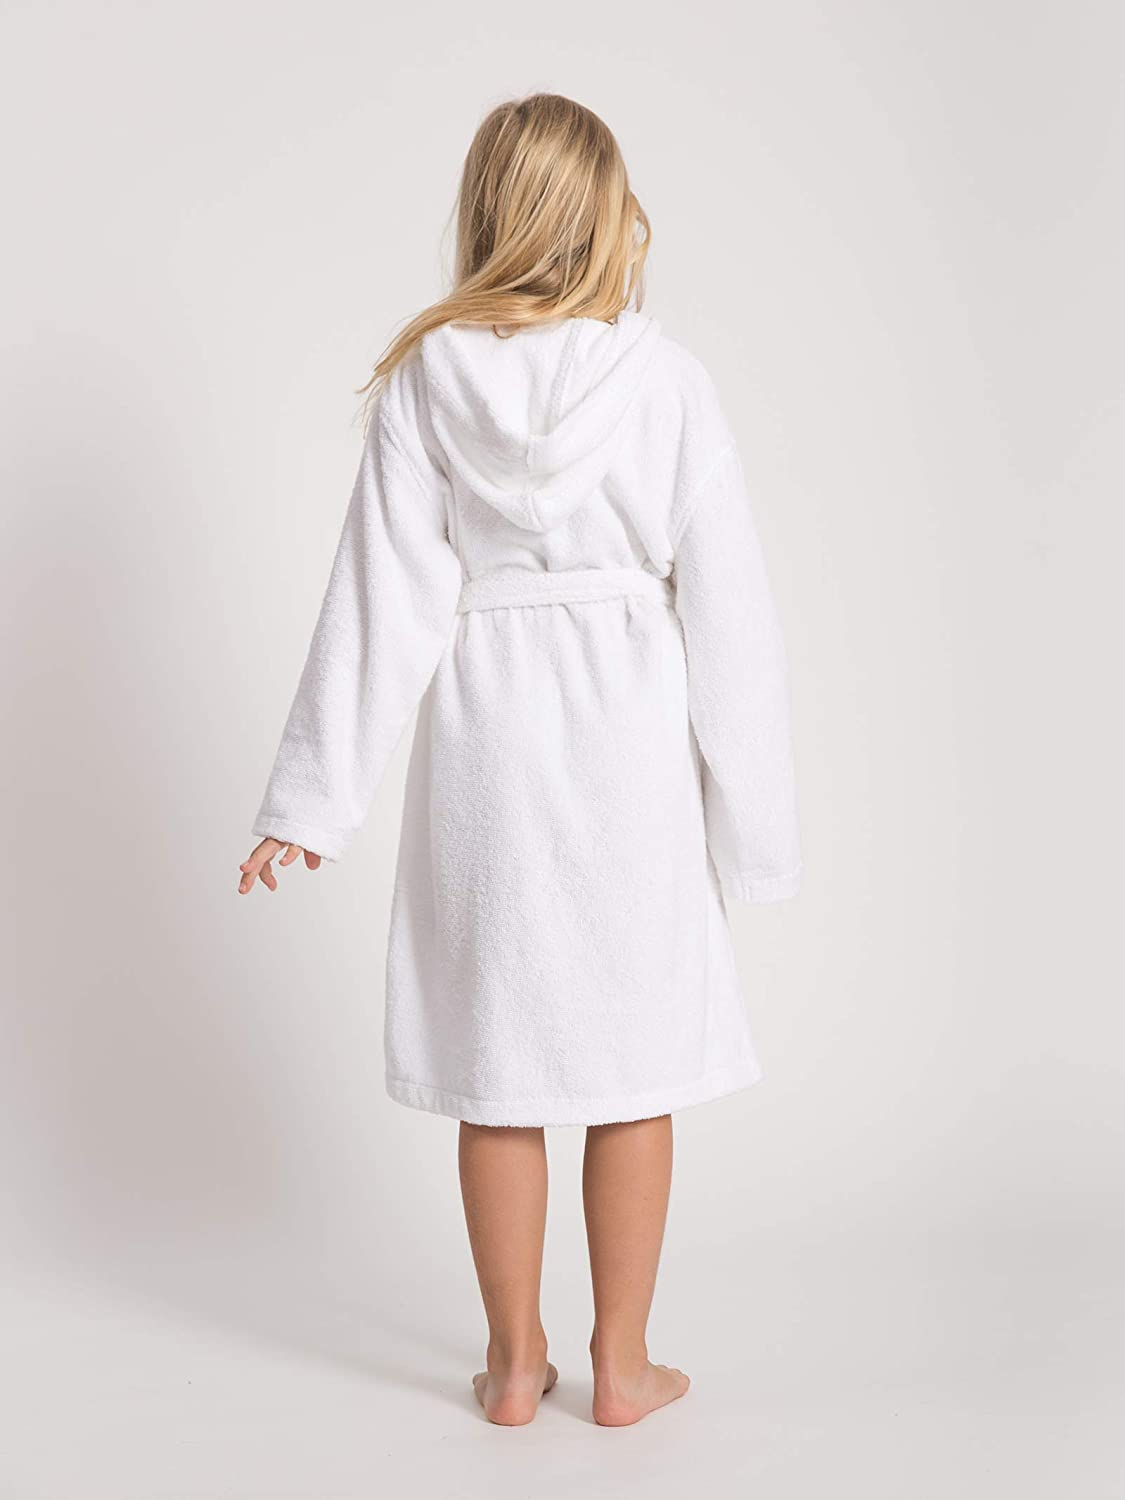 Hooded Terry Cotton Bathrobe for Girls and Boys Shower Bath Pool Dressing Gown with Pockets SIORO Robes for Kids